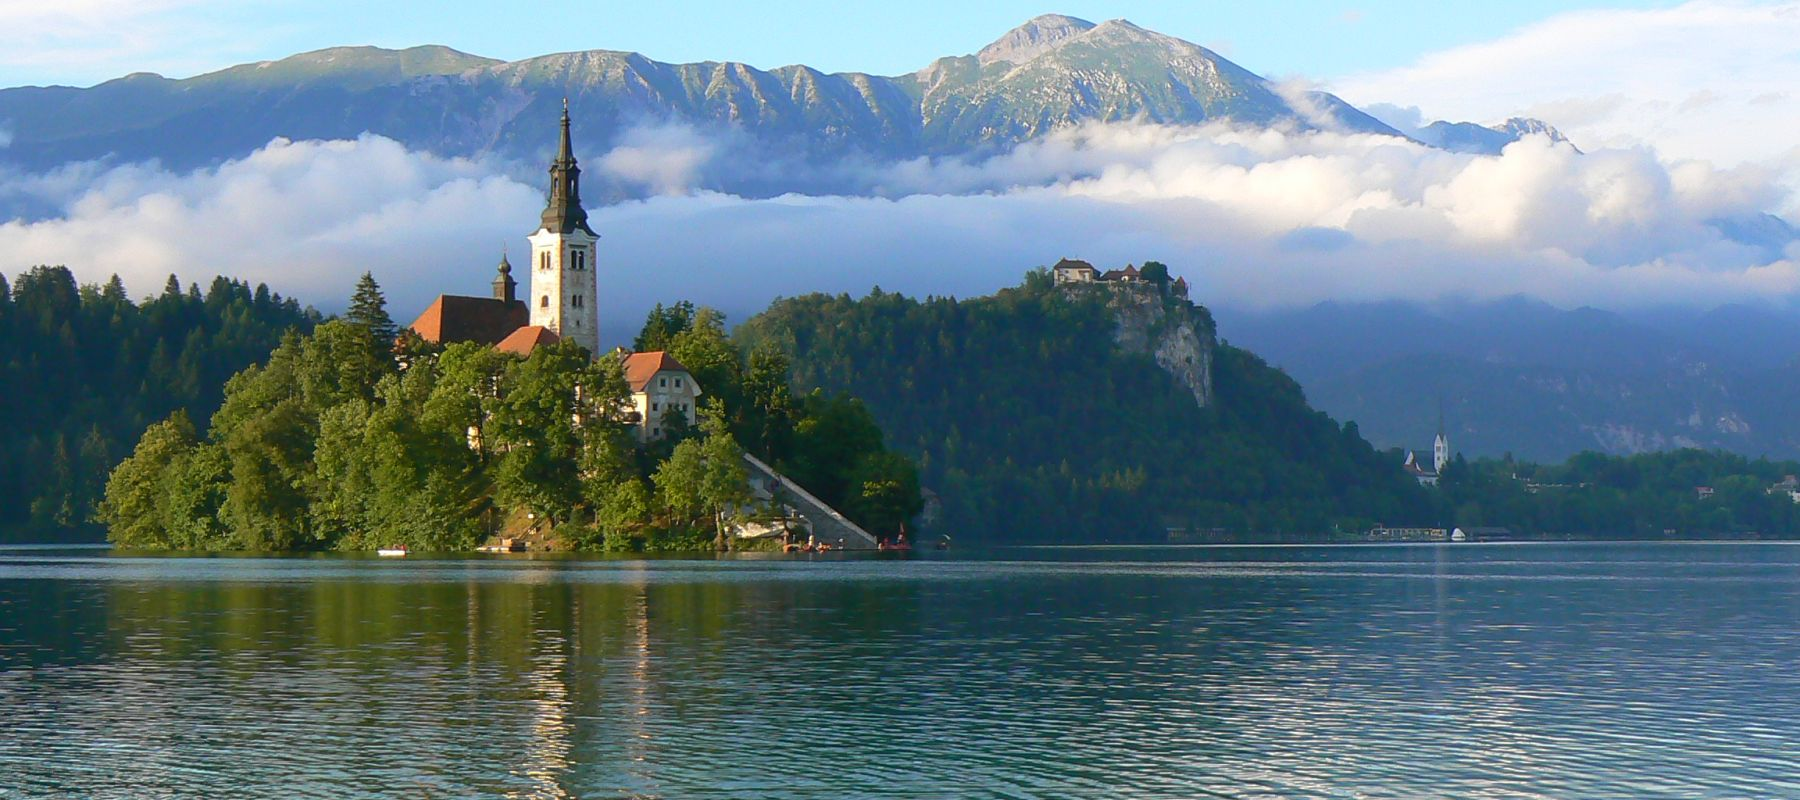 Guided Biking and Hiking Tours Alps Slovenia Lead image 3